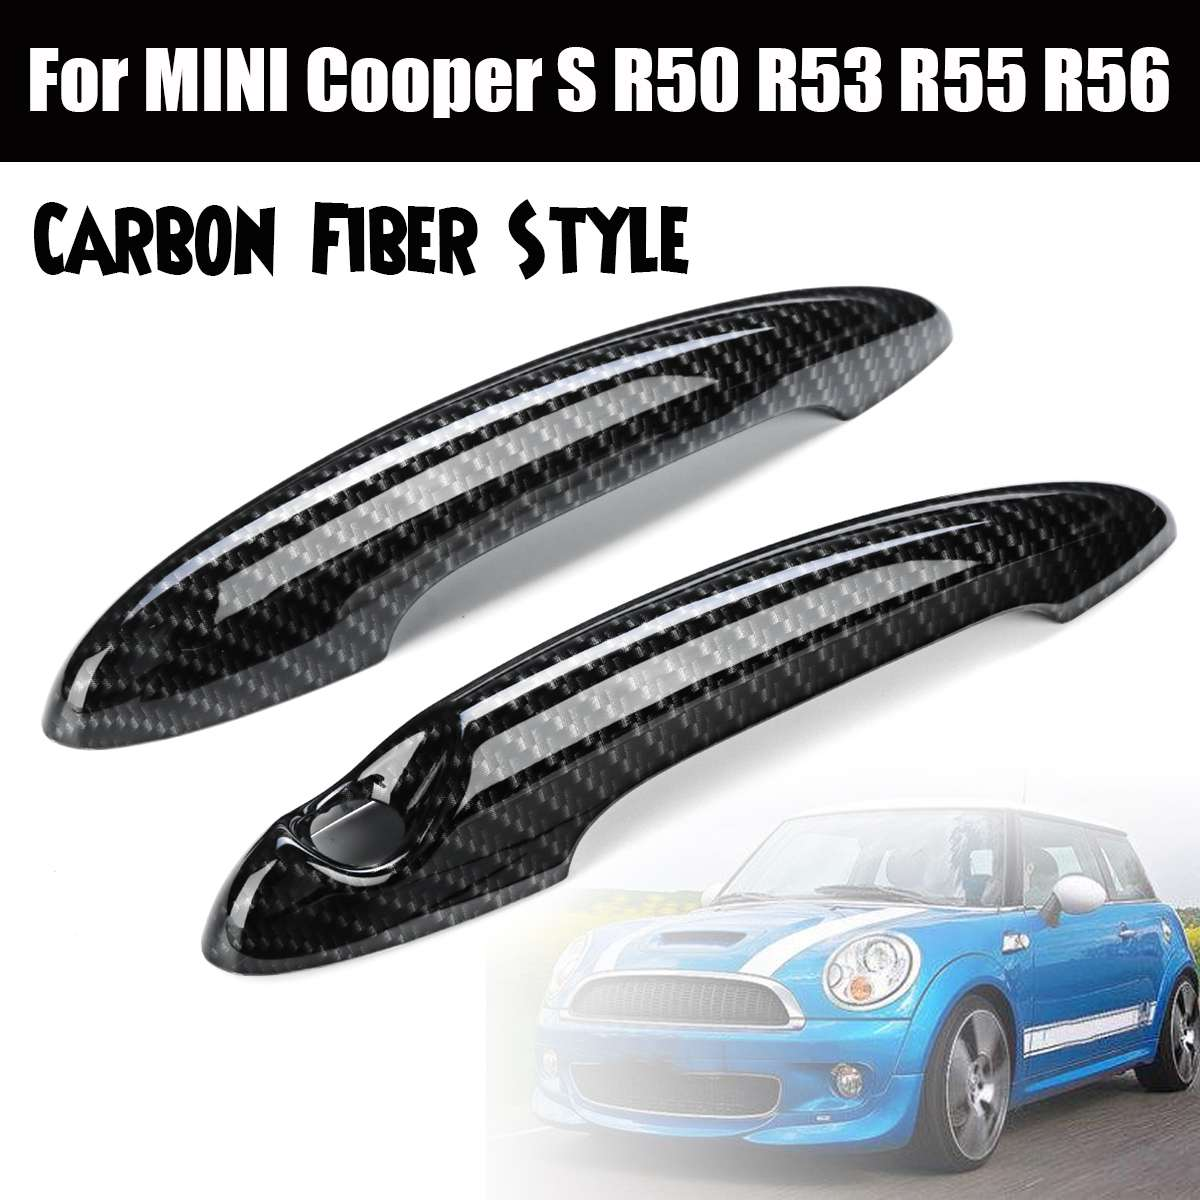 Mini Cooper//Cooper S Protective Film Covers for Headlights Without Washers for Clubman R55 Convertible R57 Hardtop R56 Coupe R58 Roadster R59